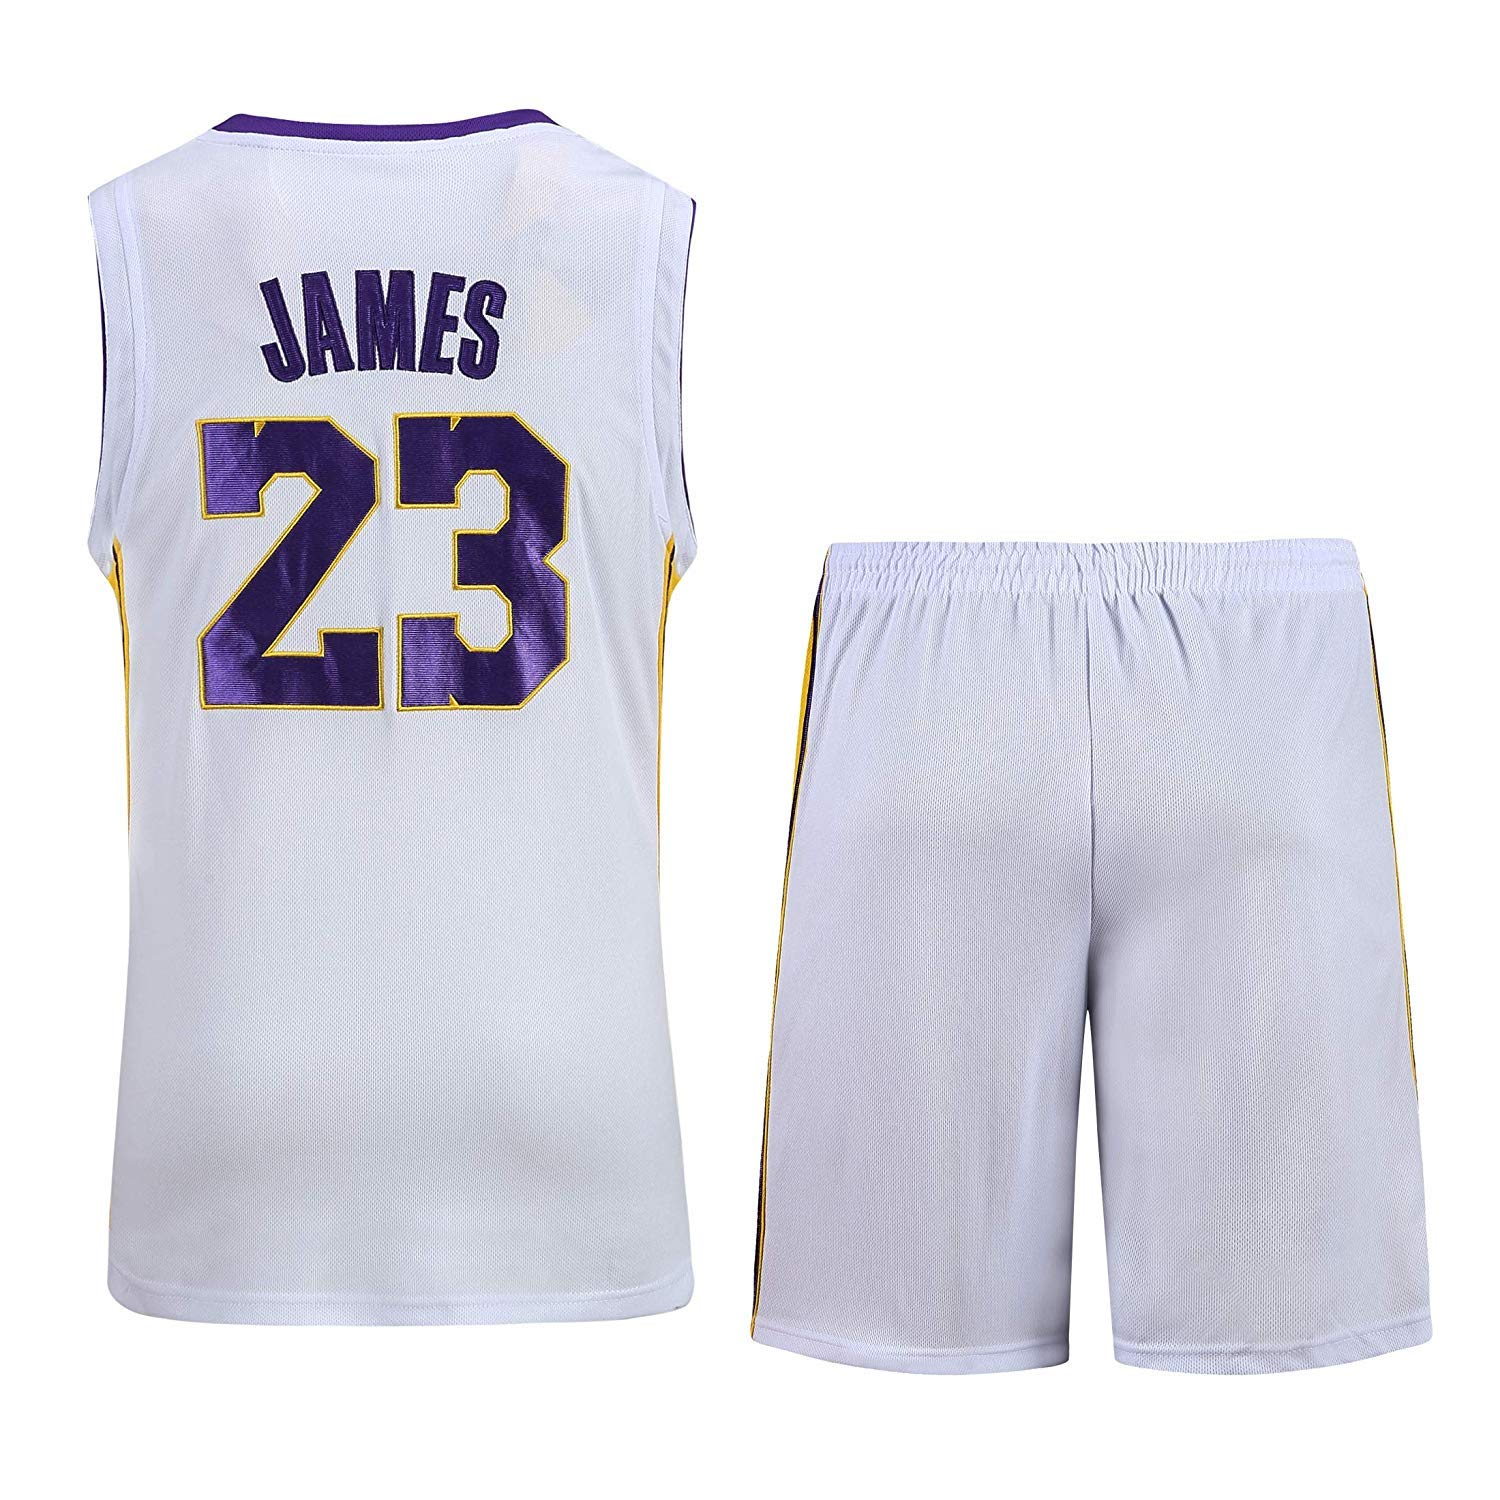 AFDLT AFDLT AFDLT NBA Lakers-Trikot Nr. 23 James Basketball-Trainingsanzug FüR MäNner B07PS55C4F Herren Viele Stile 3aa1e4